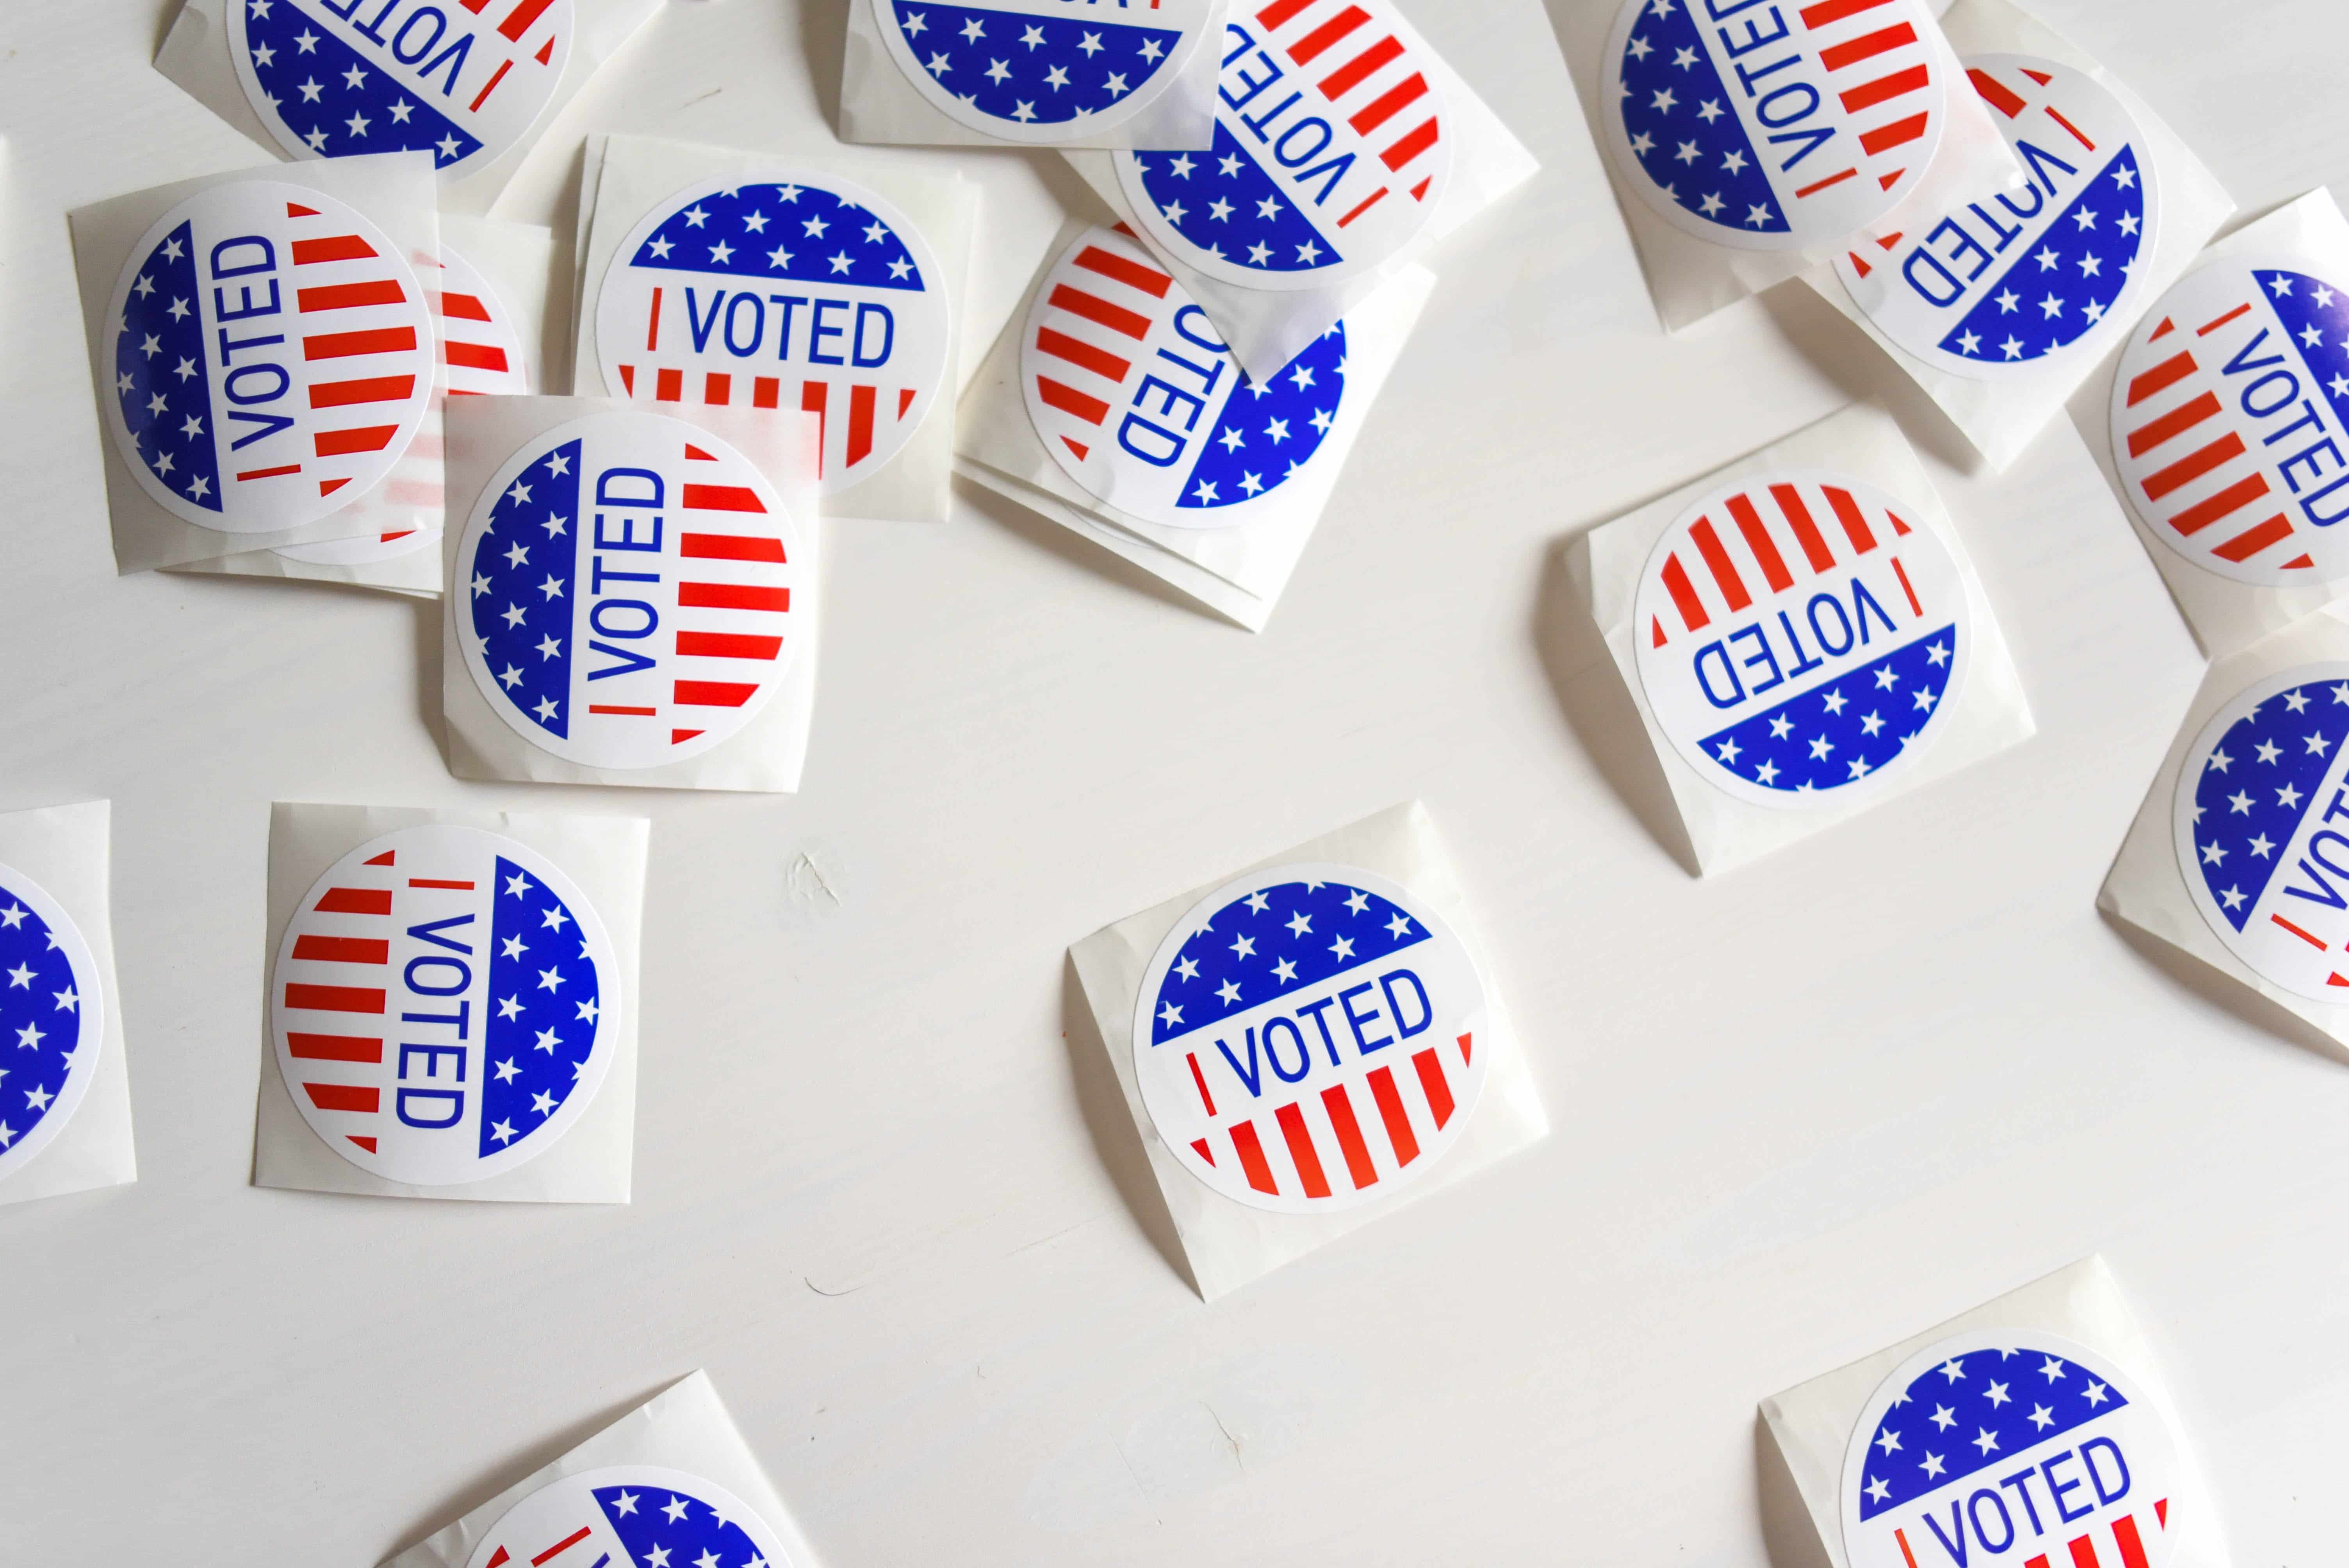 UI-UX Lessons from Working the Polls